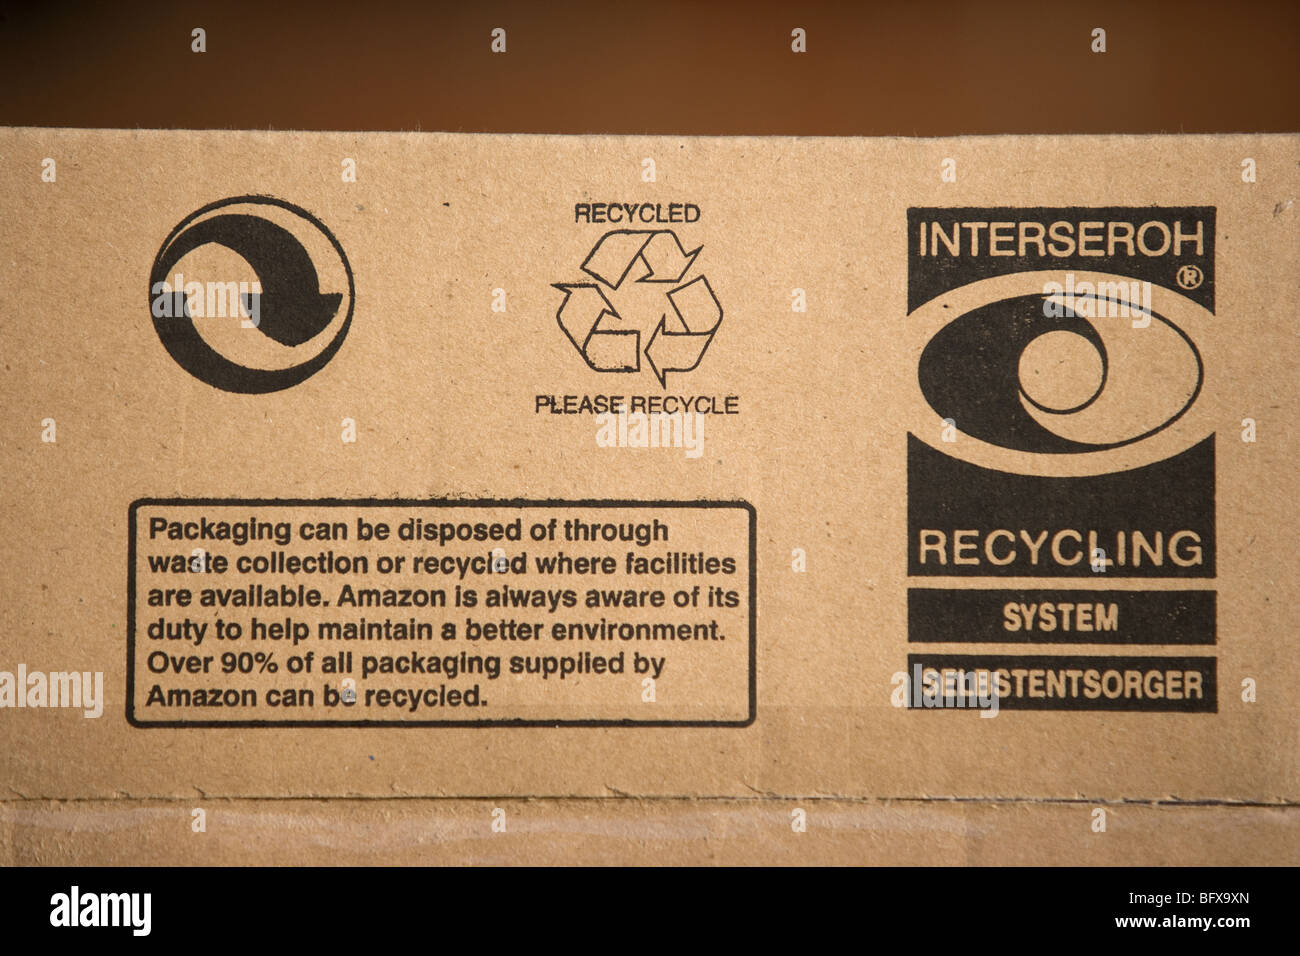 Recycling Logos On A Cardboard Box - Stock Image